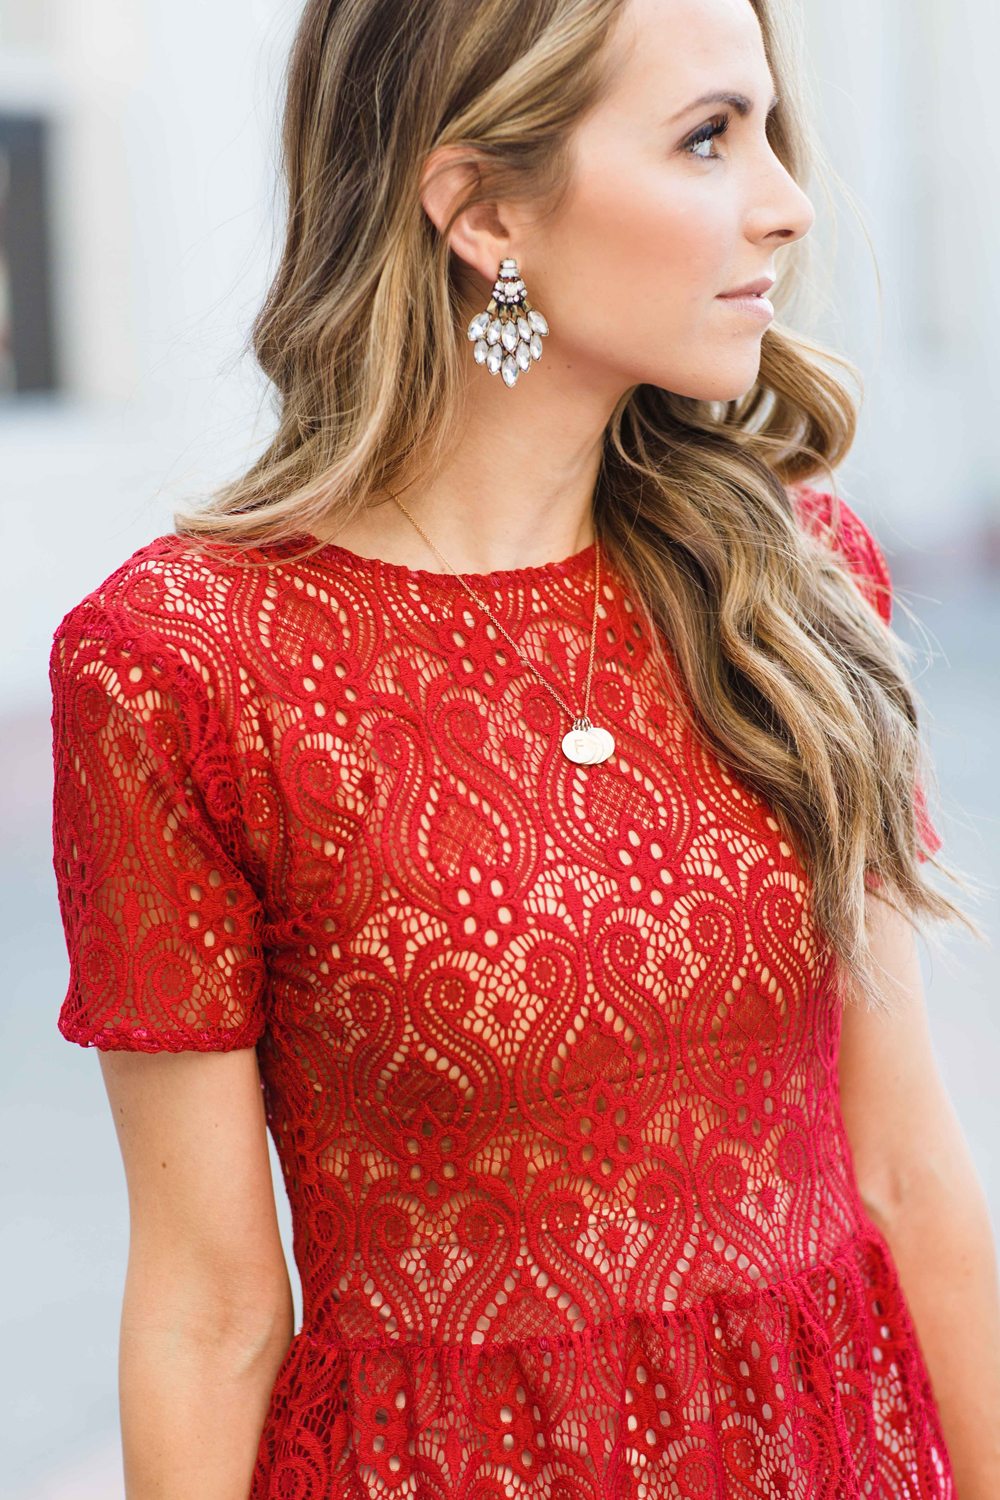 Merrick's Art Red Lace Top